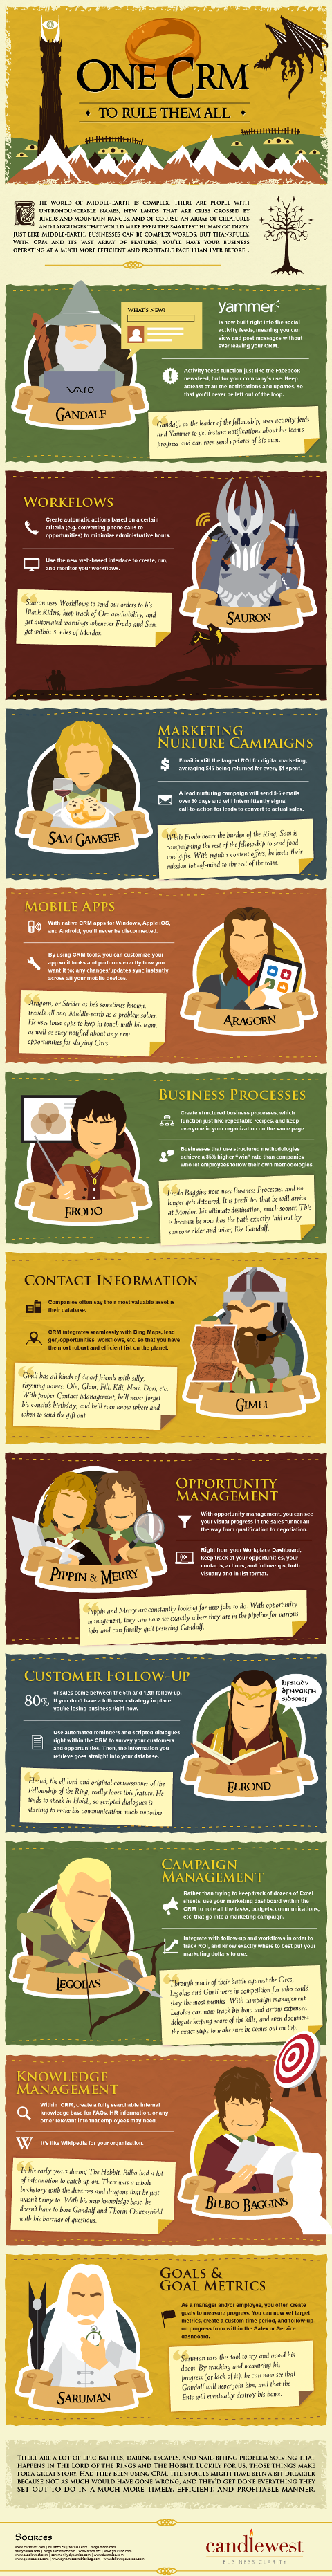 one-crm-to-rule-them-all-infographic-800 (2)